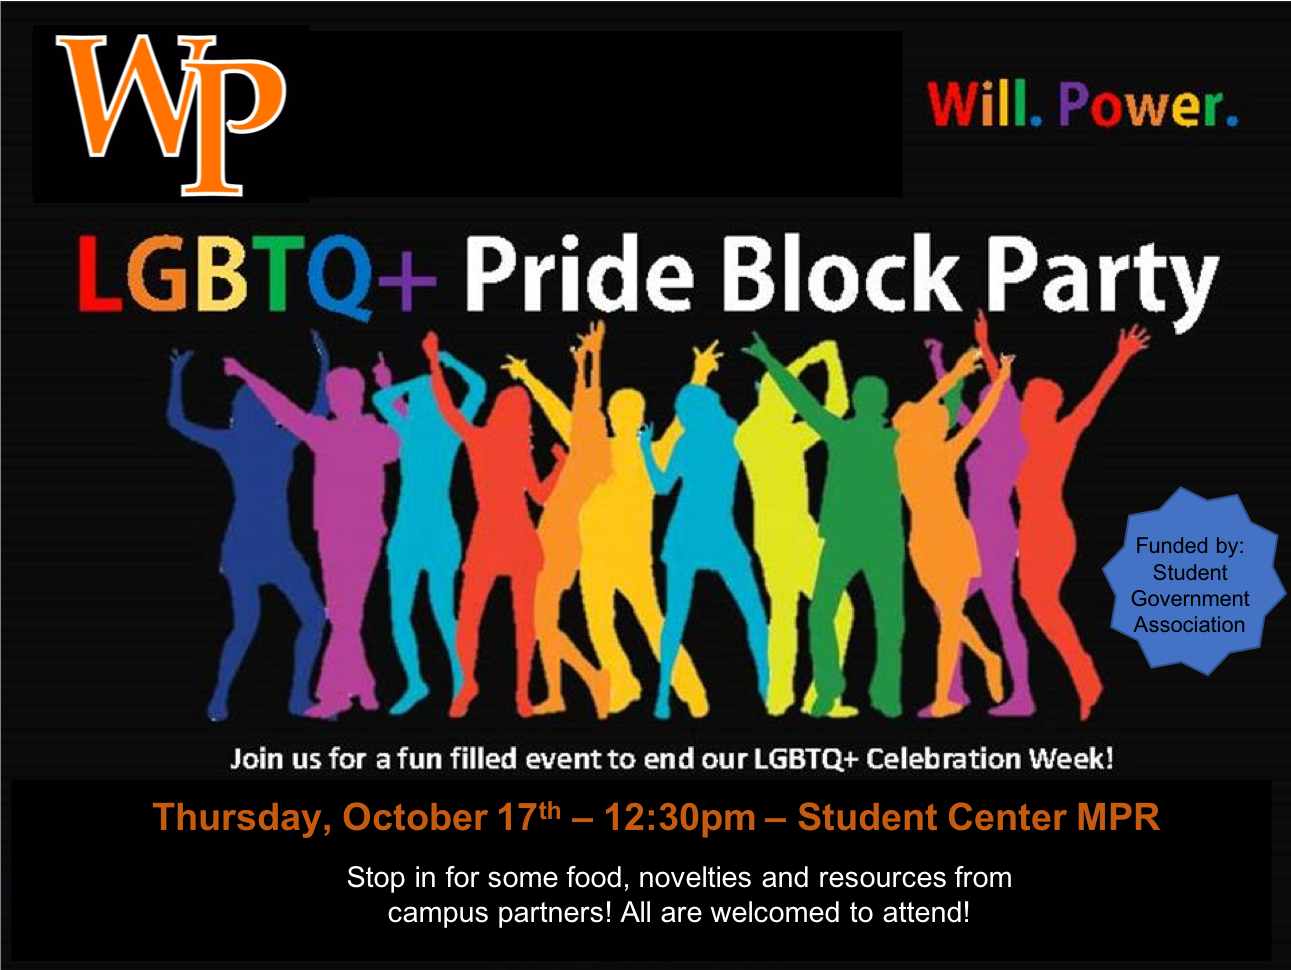 PrideBlockParty